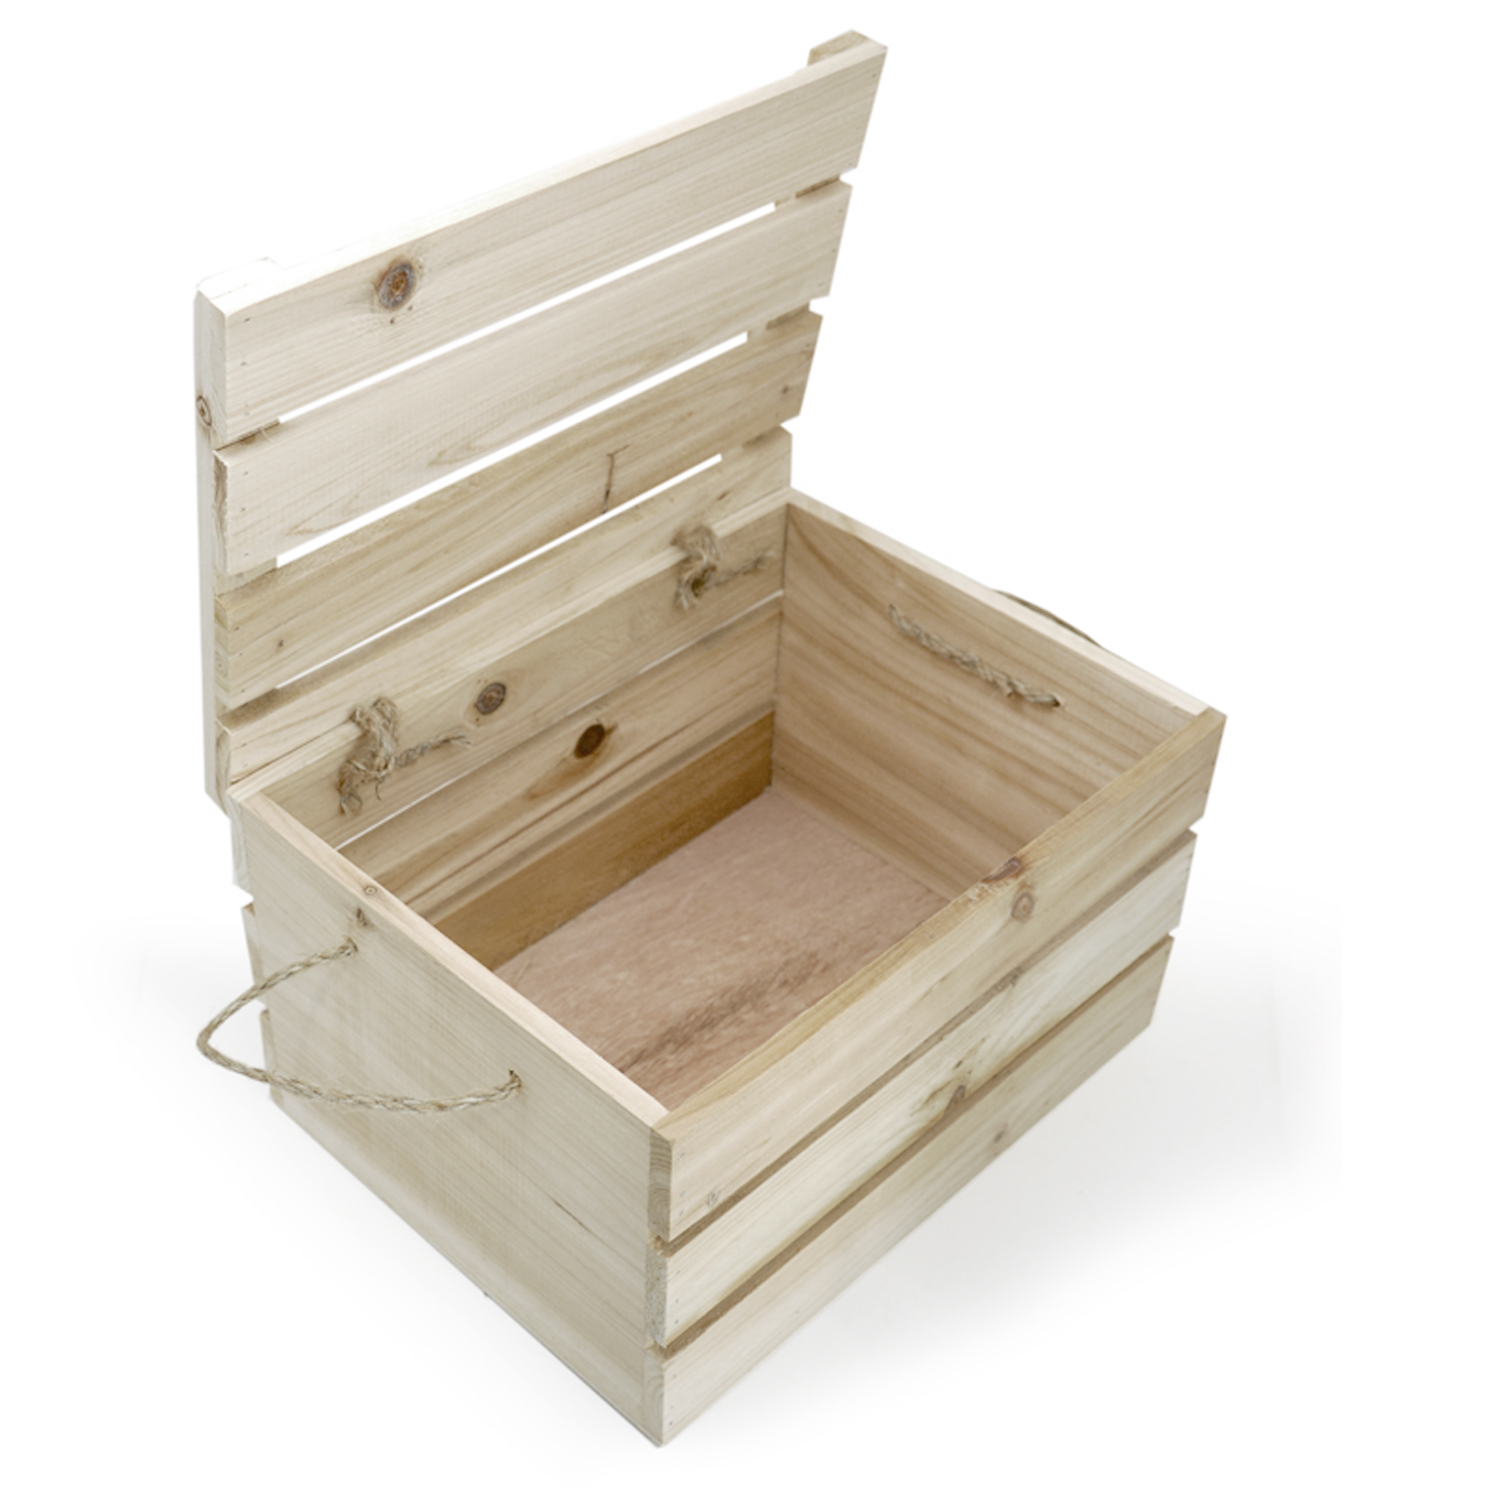 Natural Wooden Crate Storage Box with Lid - Medium 11in